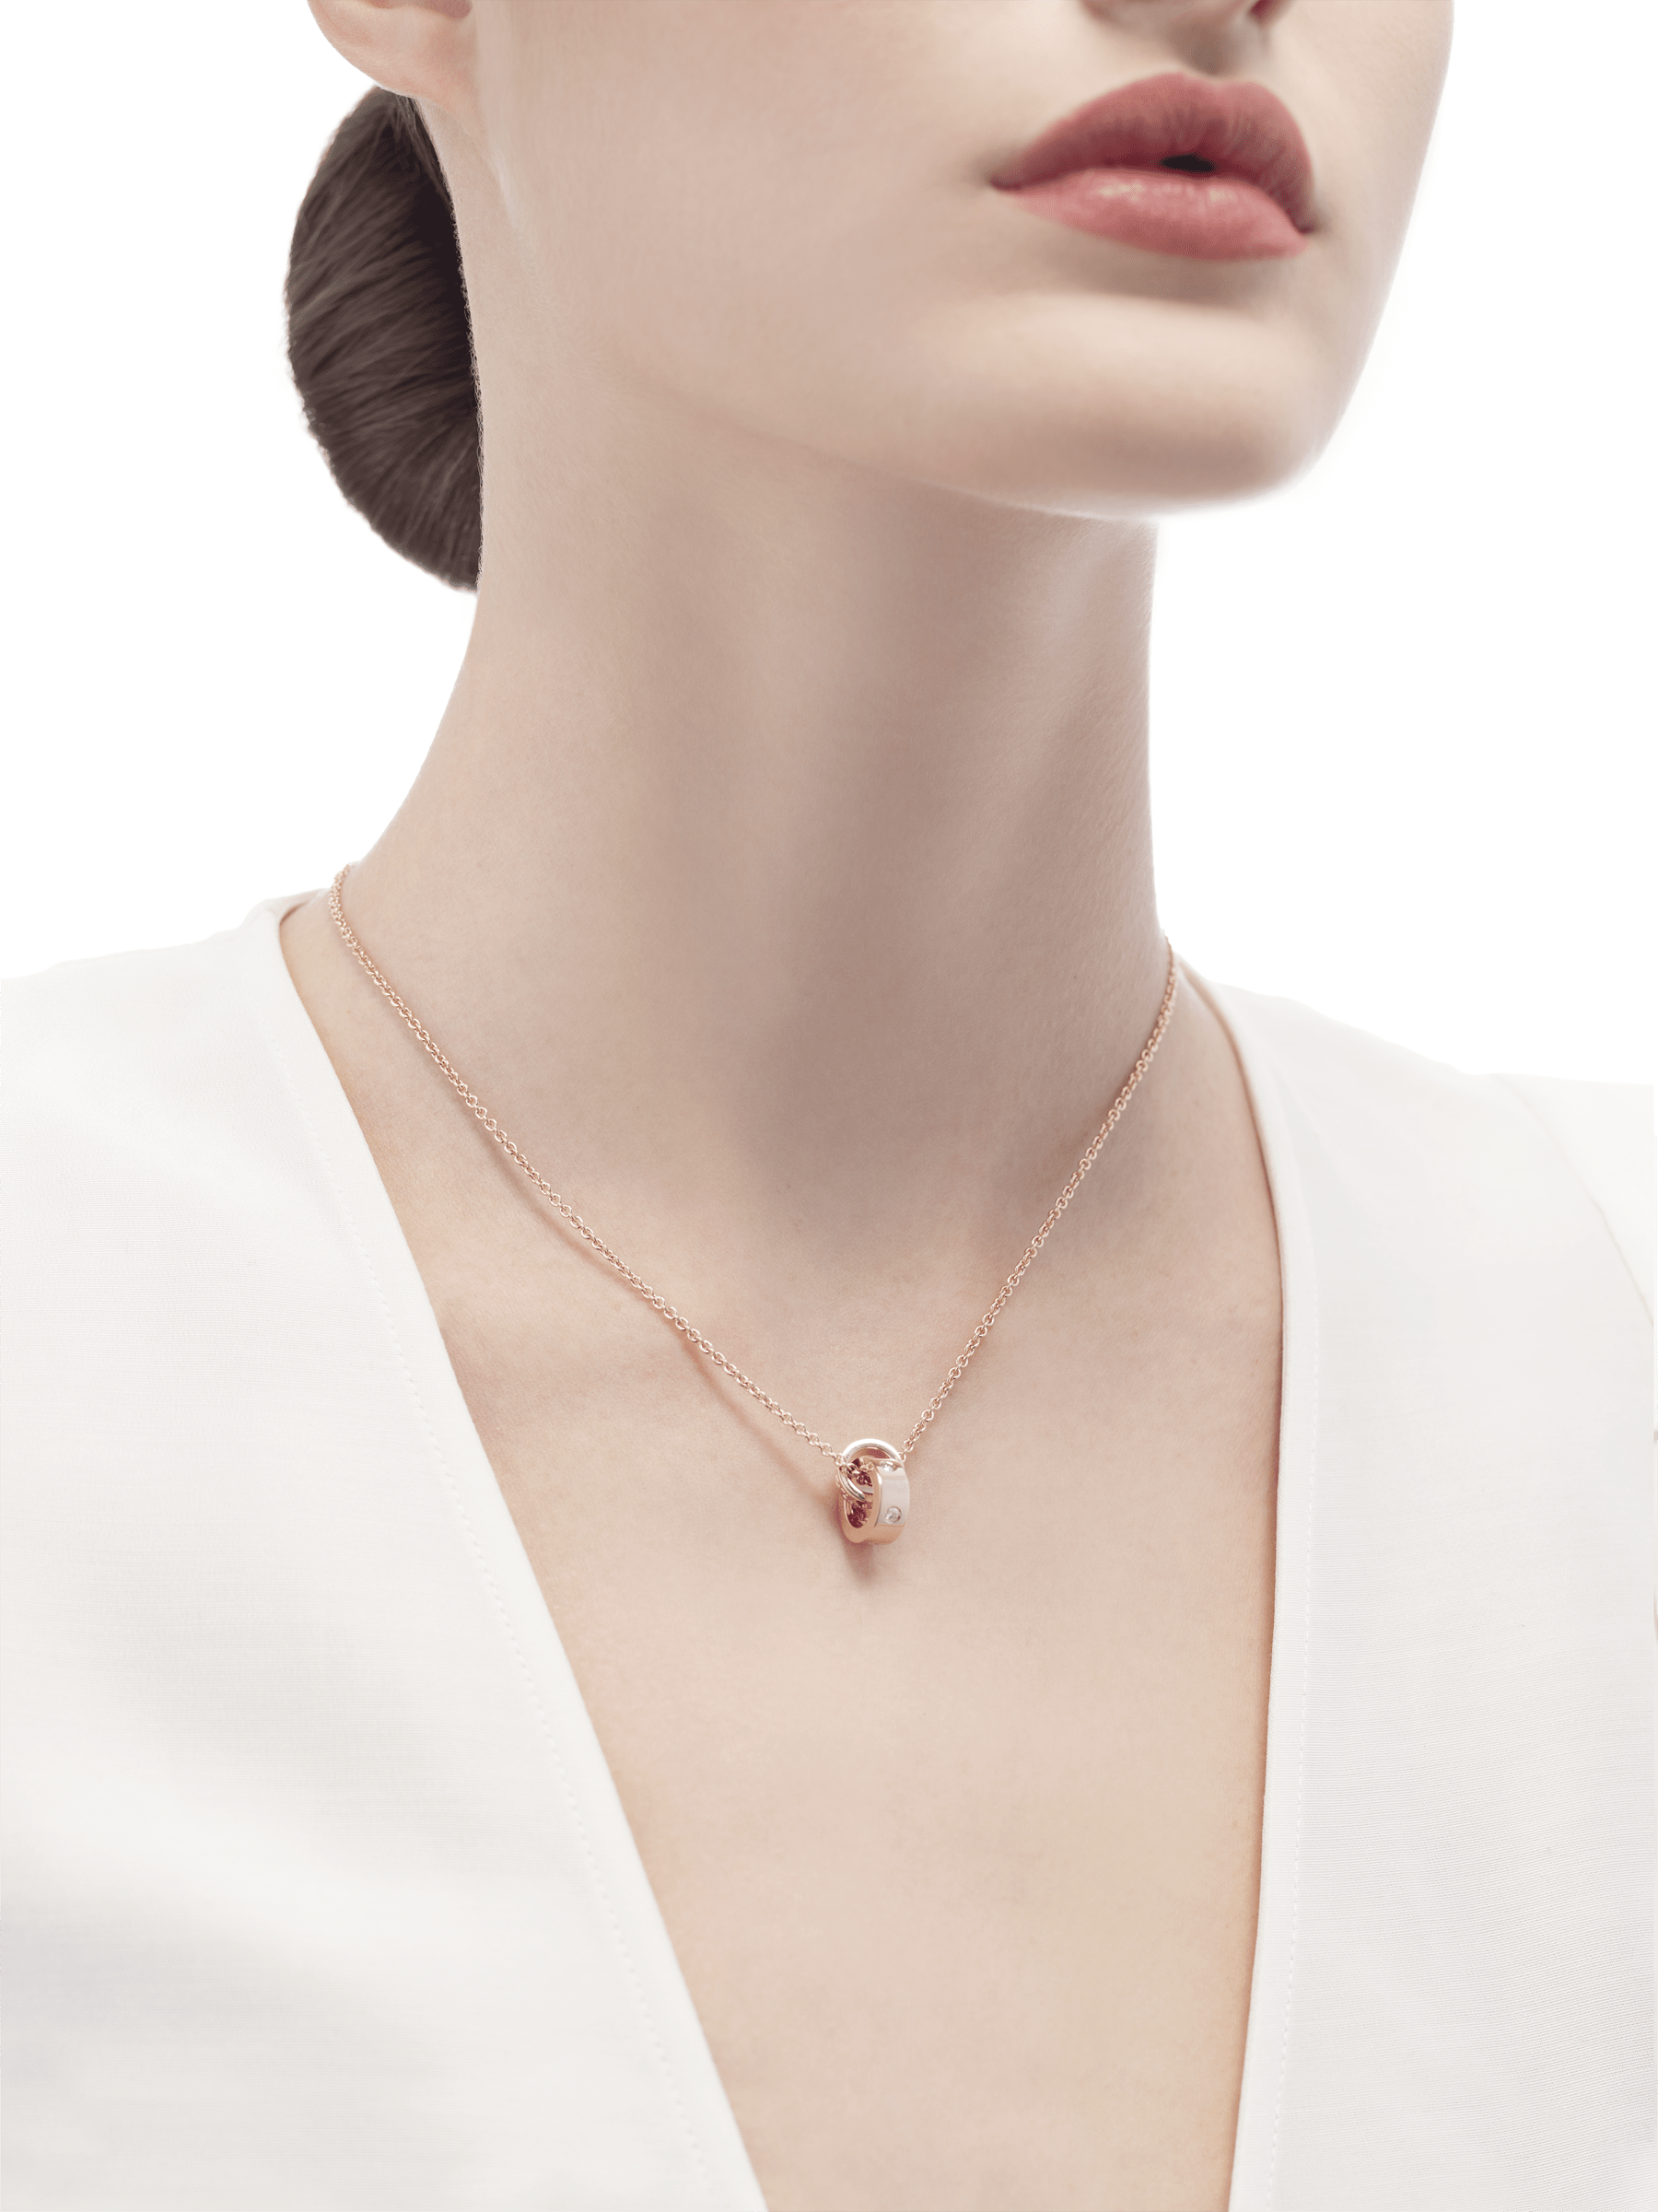 BVLGARI BVLGARI necklace with 18 kt rose gold chain and 18 kt rose gold pendant set with five diamonds. 354028 image 4